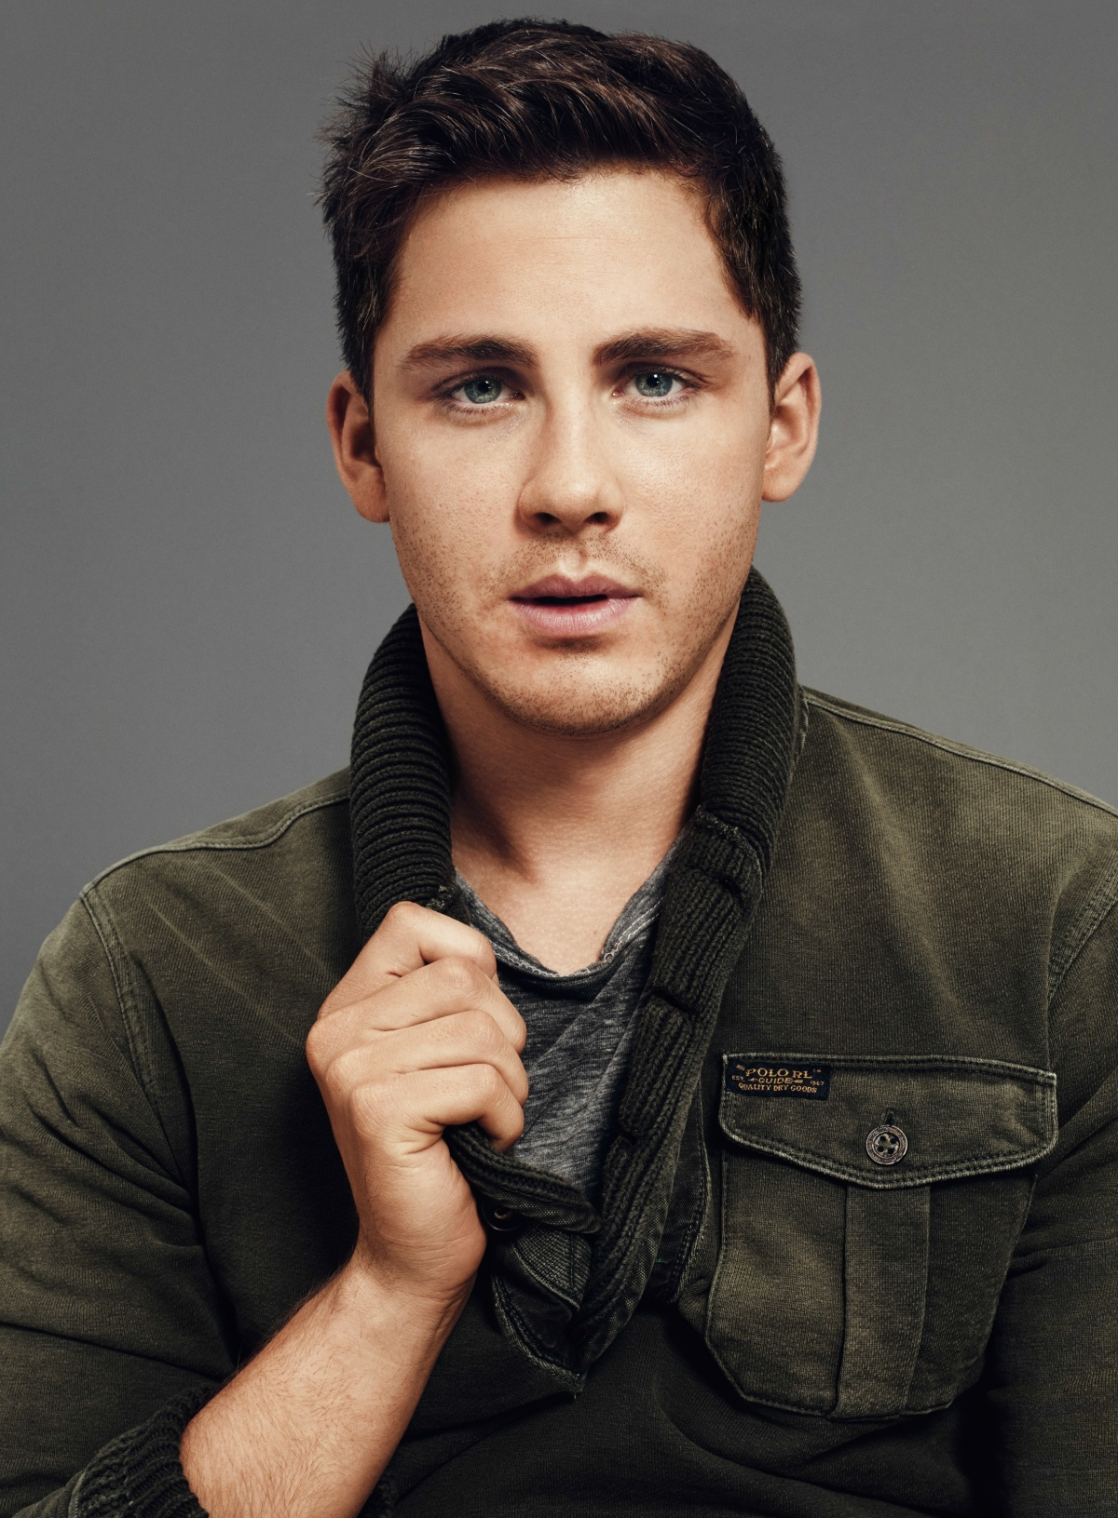 Logan Lerman Freundin 2019